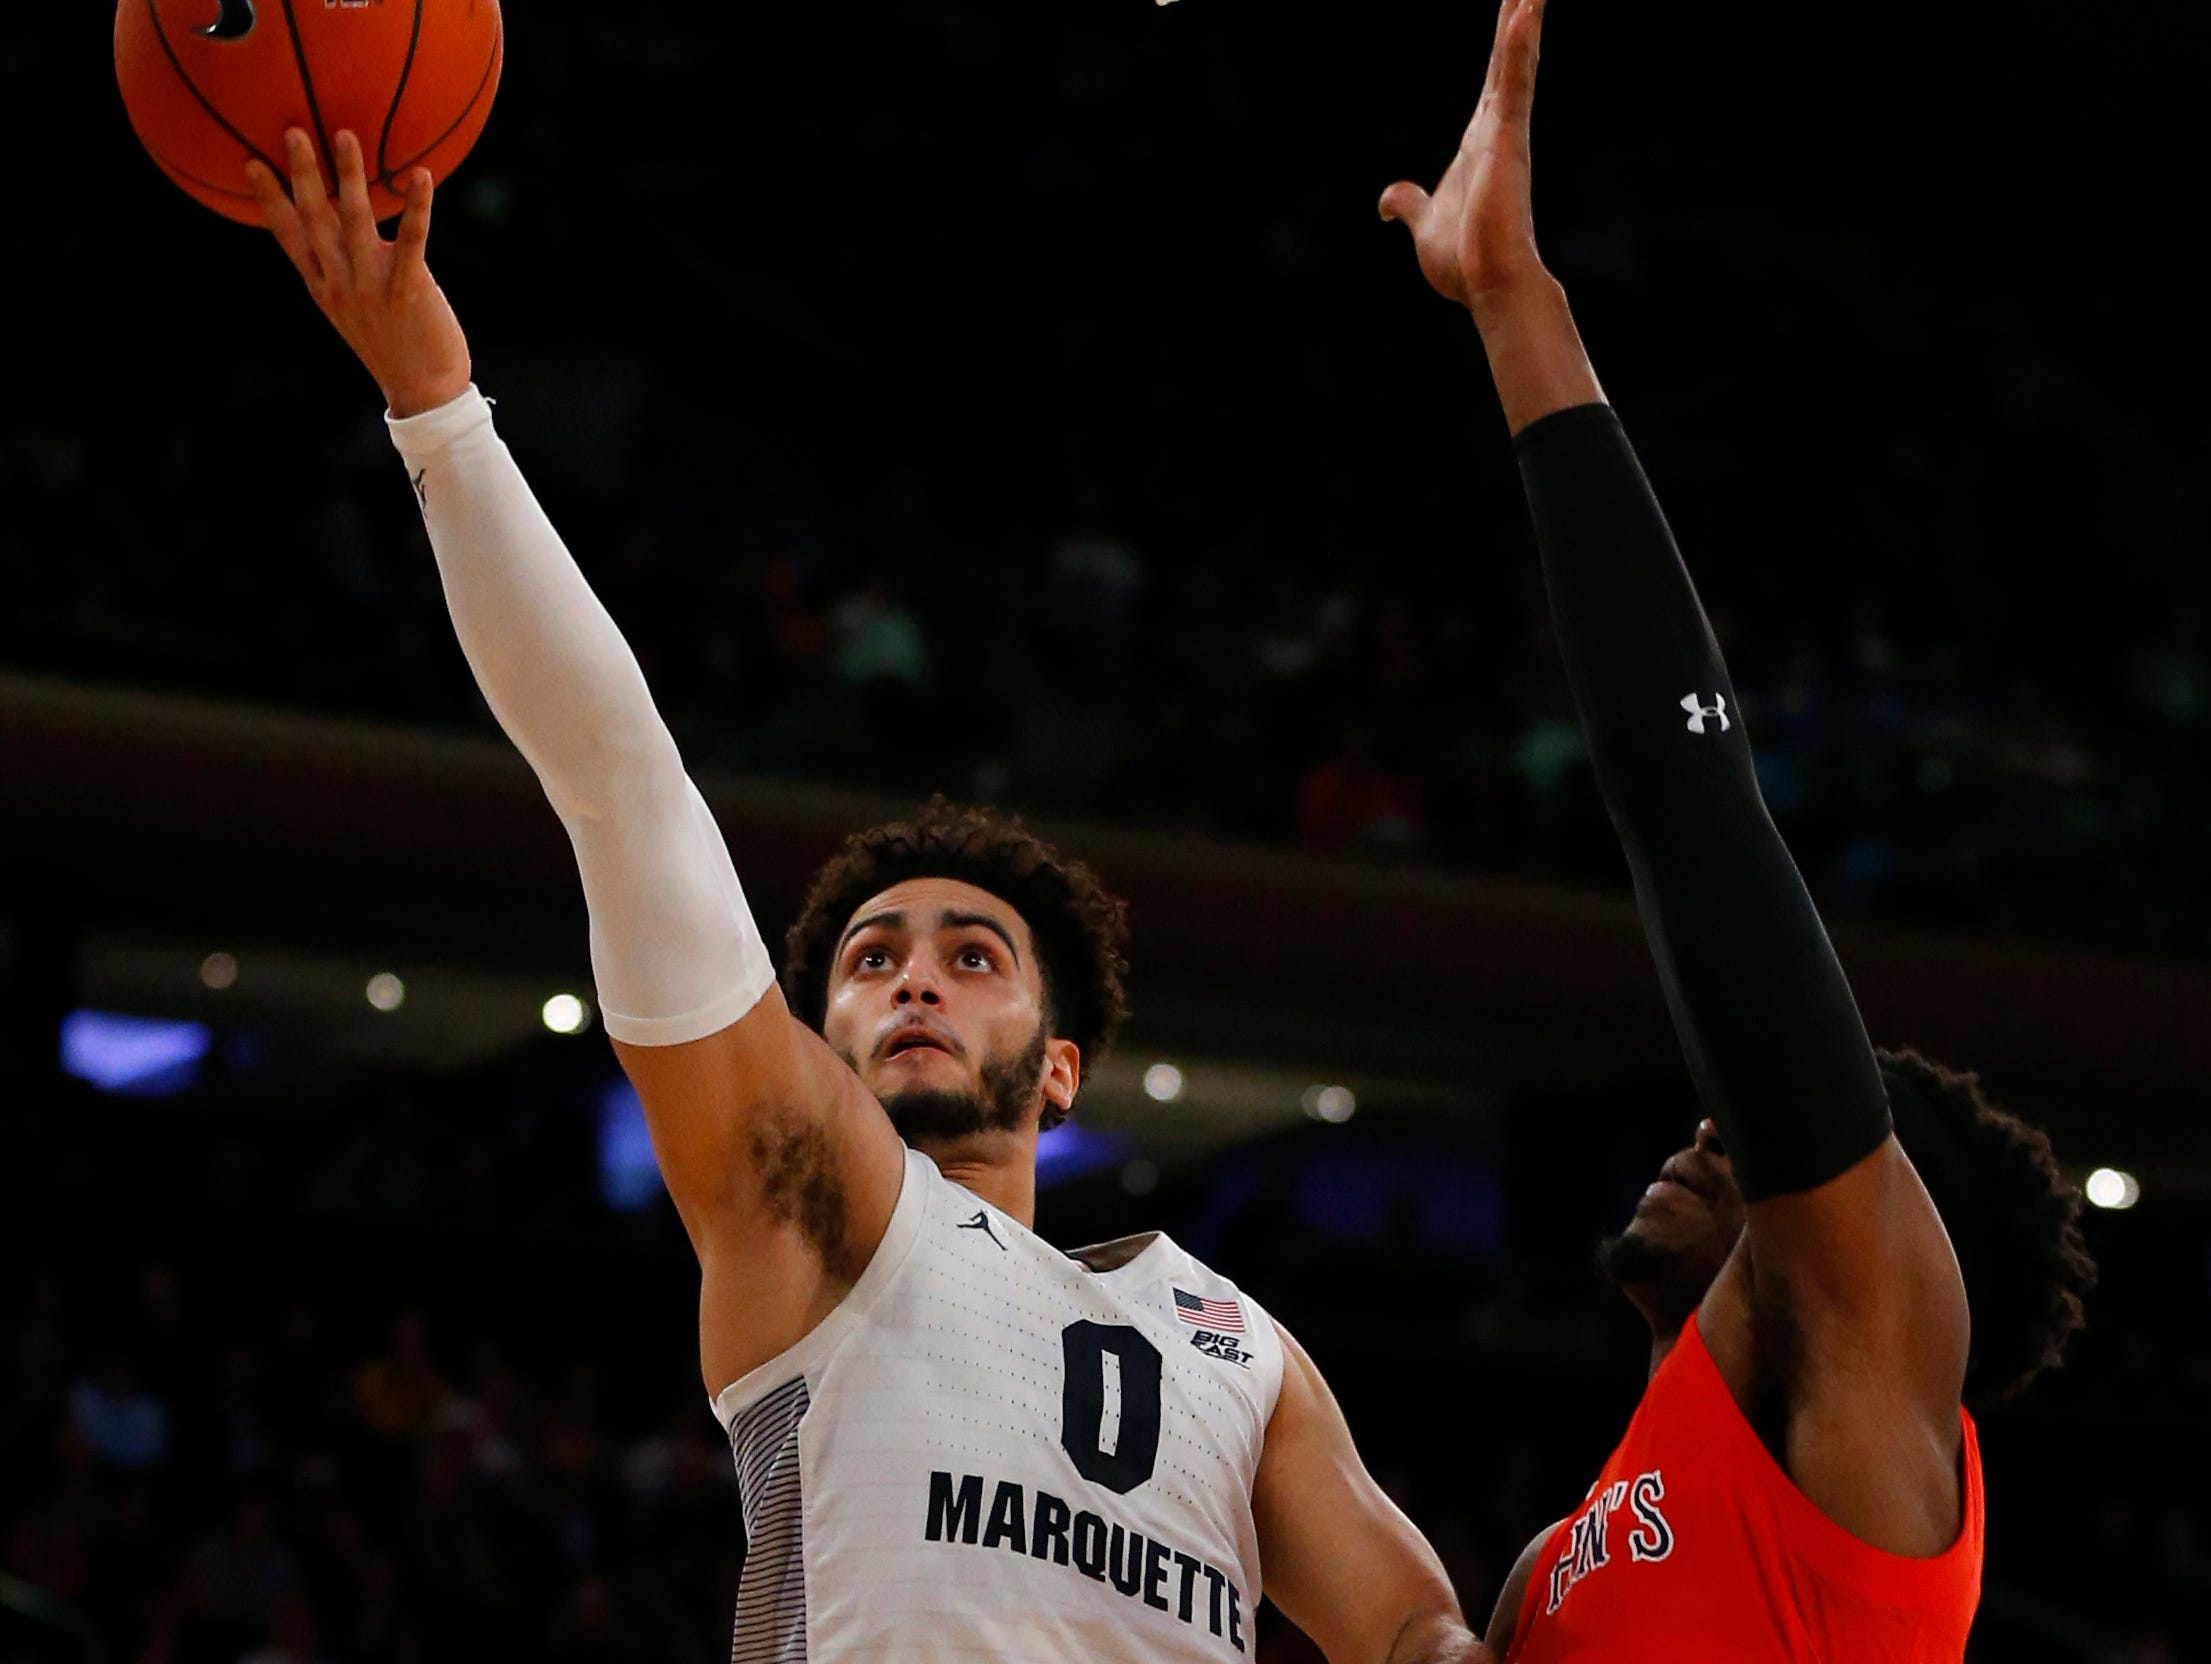 Marquette's Markus Howard gets past Sedee Keita of St. John's on his way to the basket.